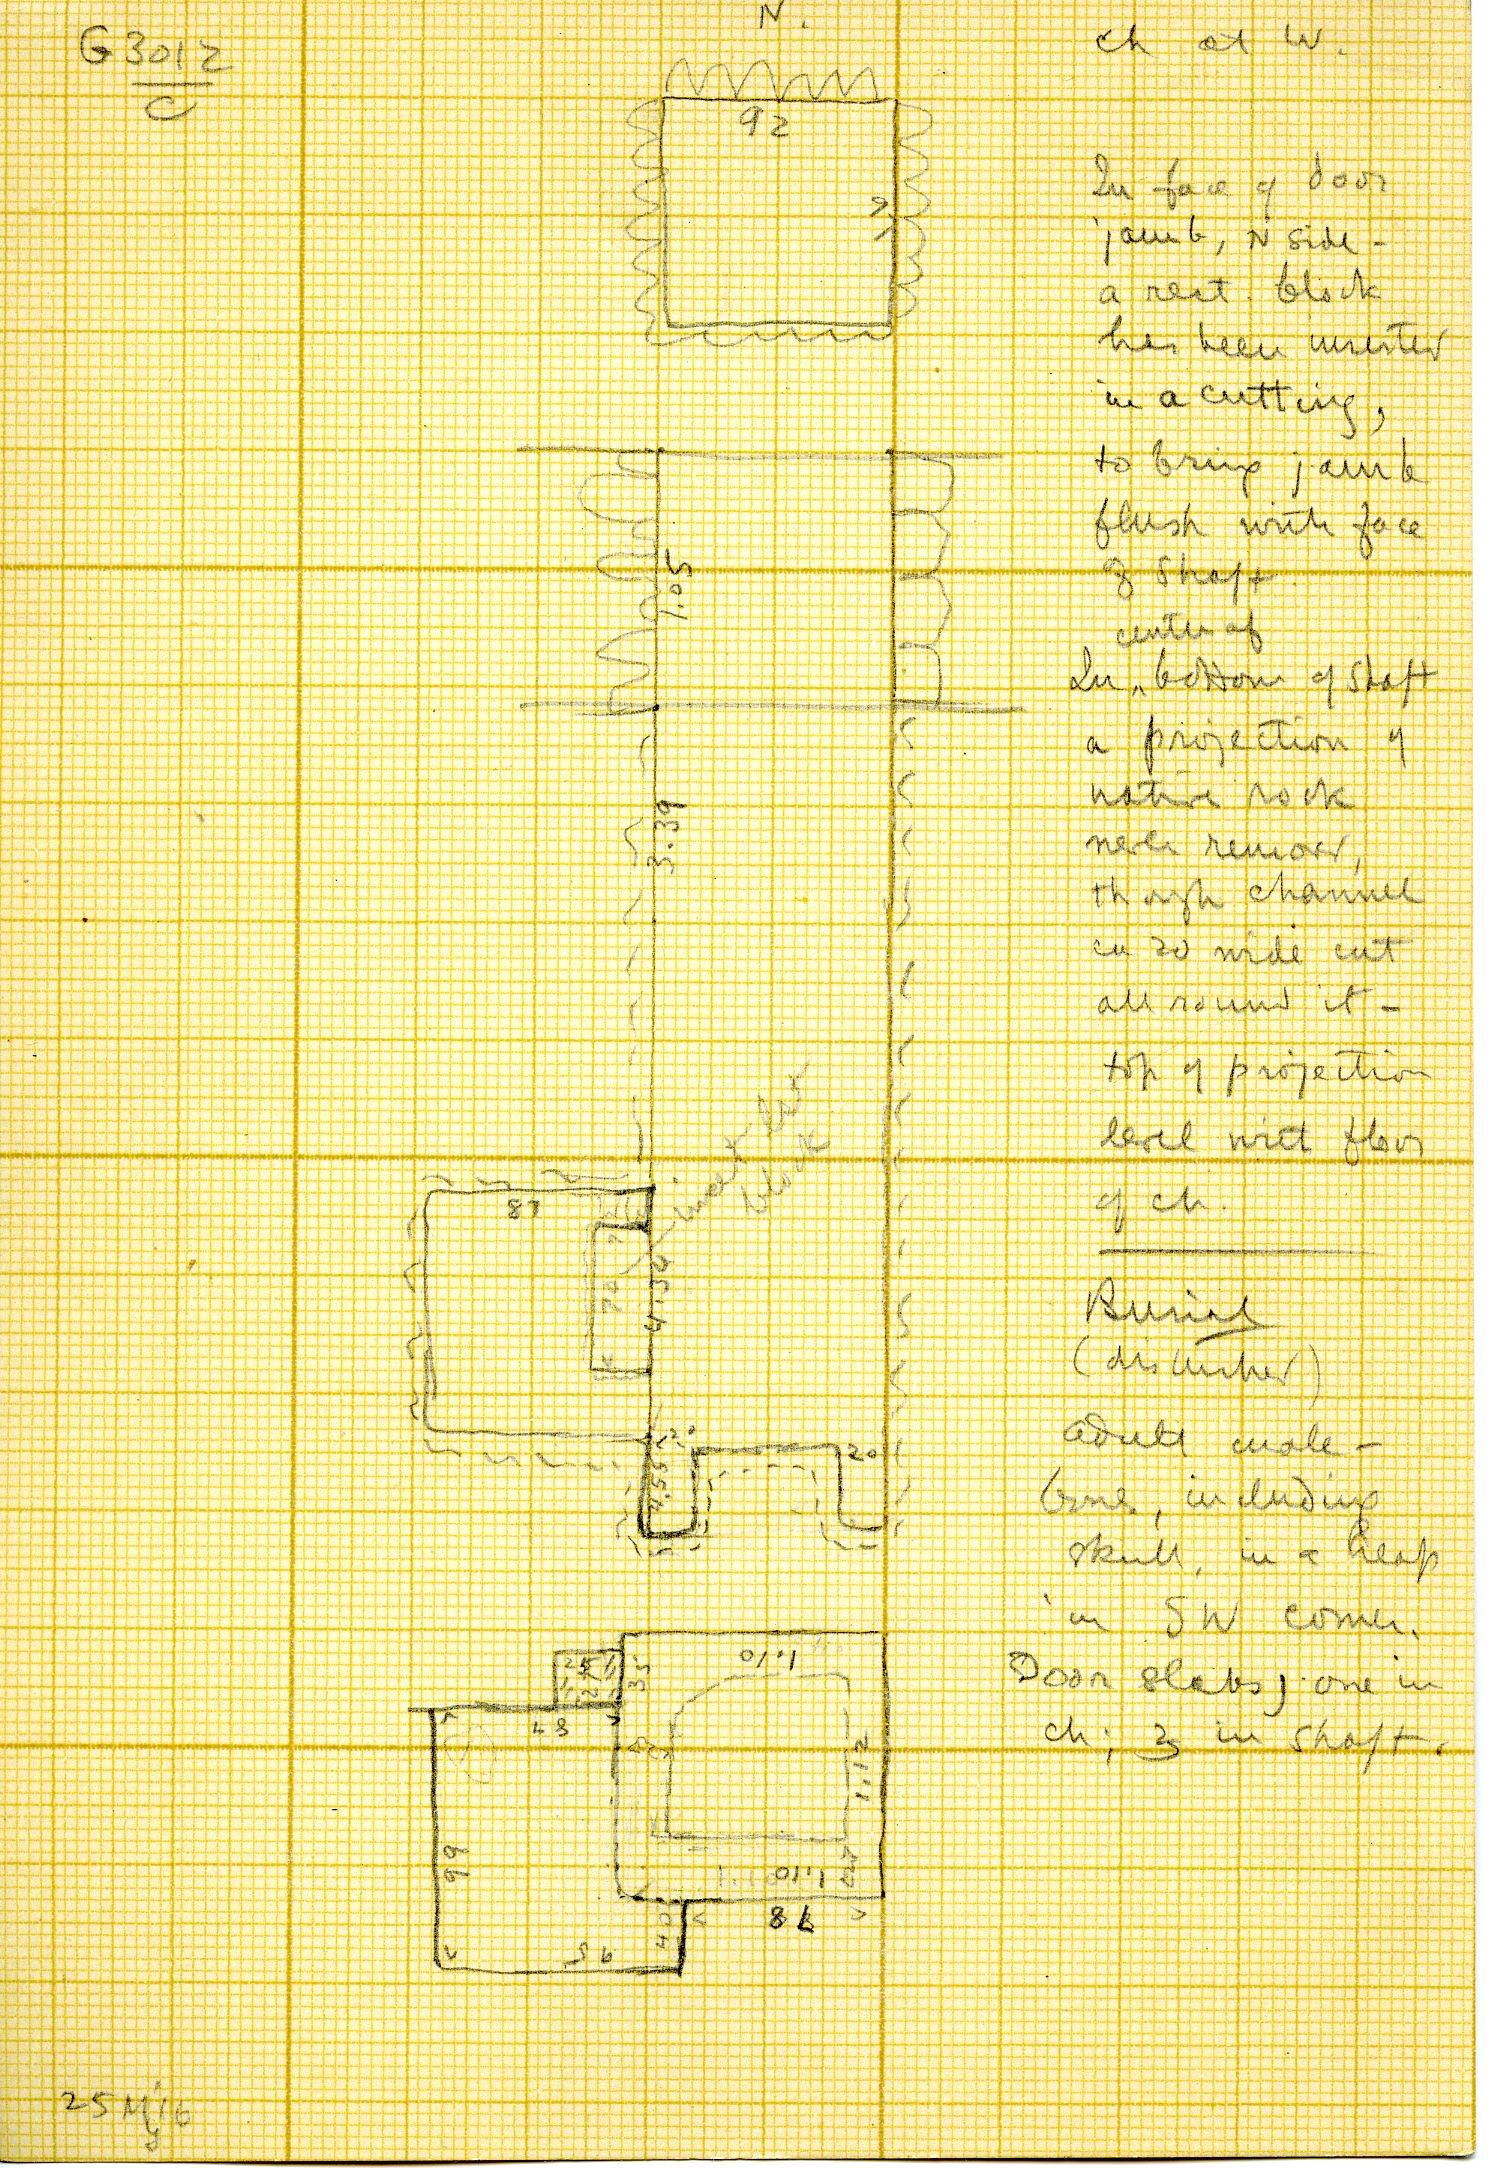 Maps and plans: G 3012, Shaft C